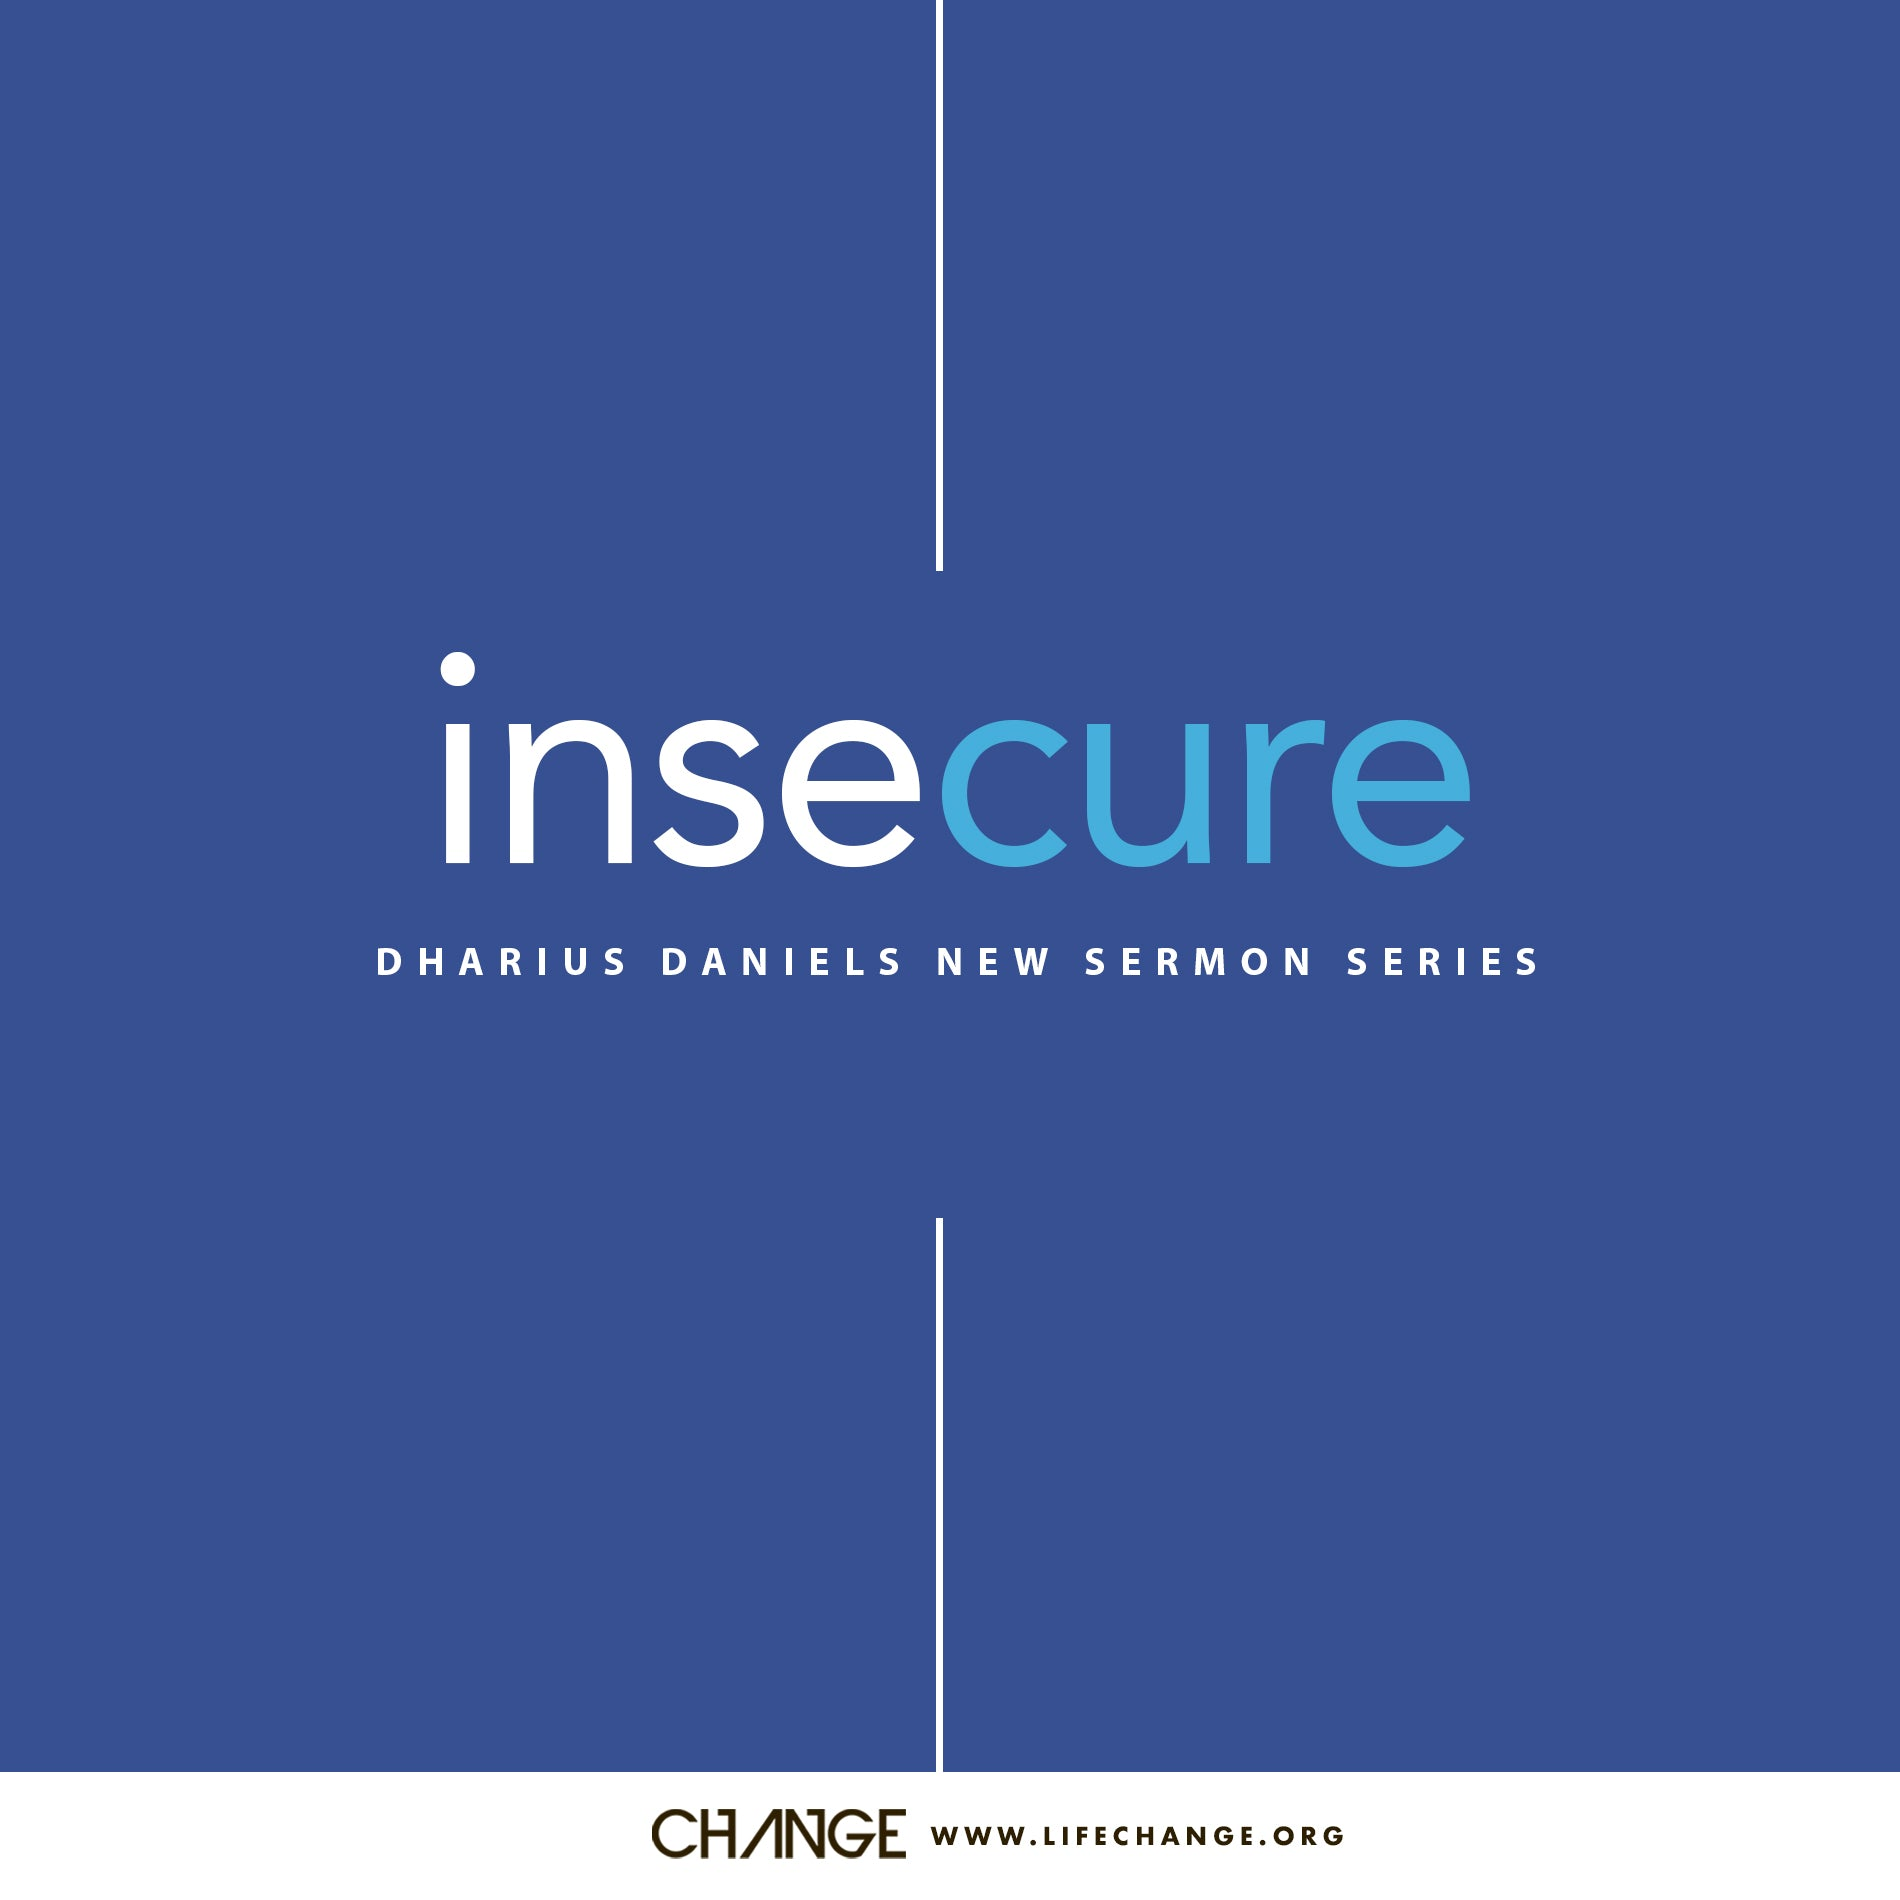 Insecure Sermon Series MP3